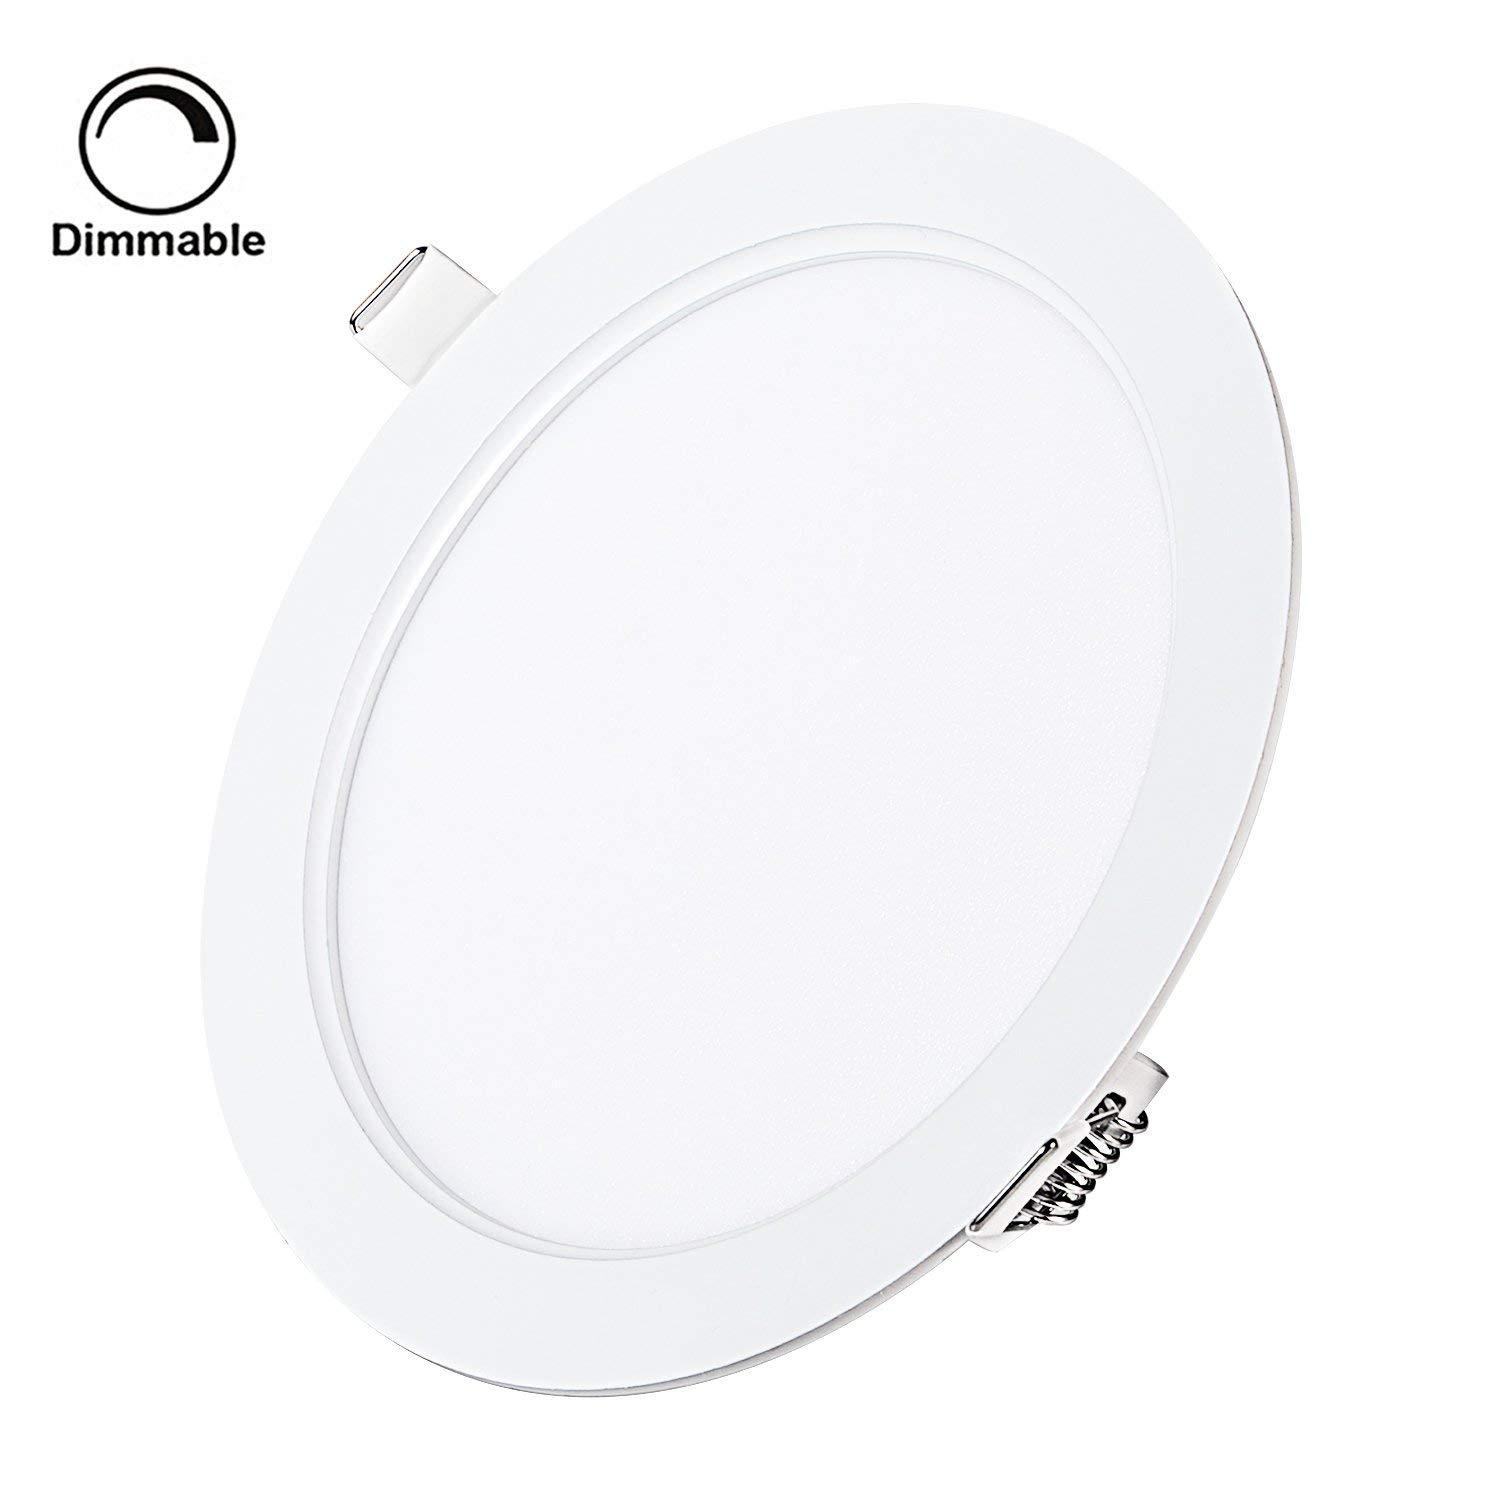 """9W 5"""" Dimmable LED Recessed Panel Light,Ultra-Thin Round LED Panel Light,3000K Warm White,720lm,LED Recessed Ceiling Downlight Fixture,110V LED Driver Included"""